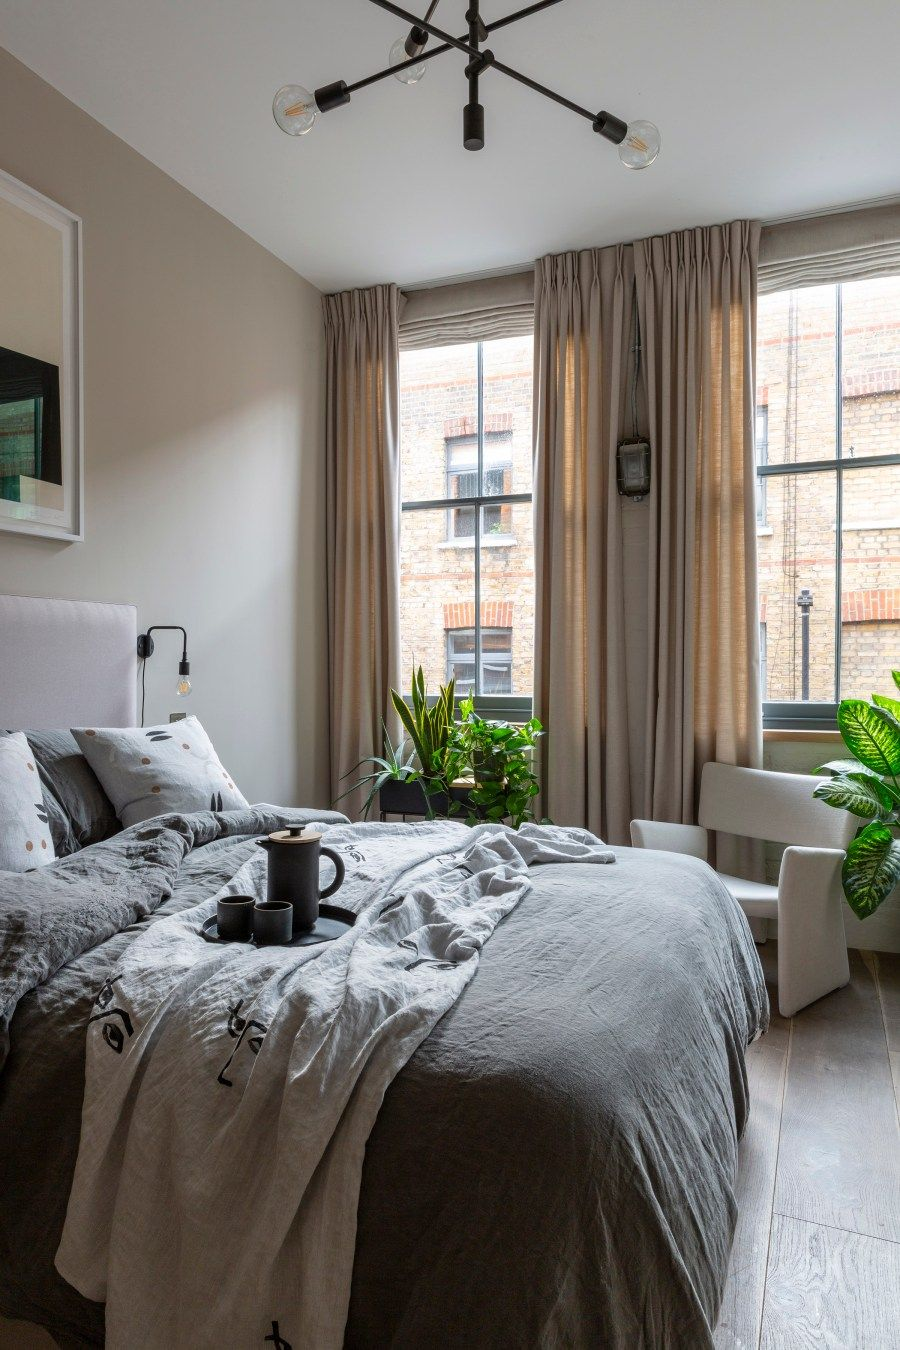 Shoreditch Design Rooms: A Cosy, Beige Bedroom In A